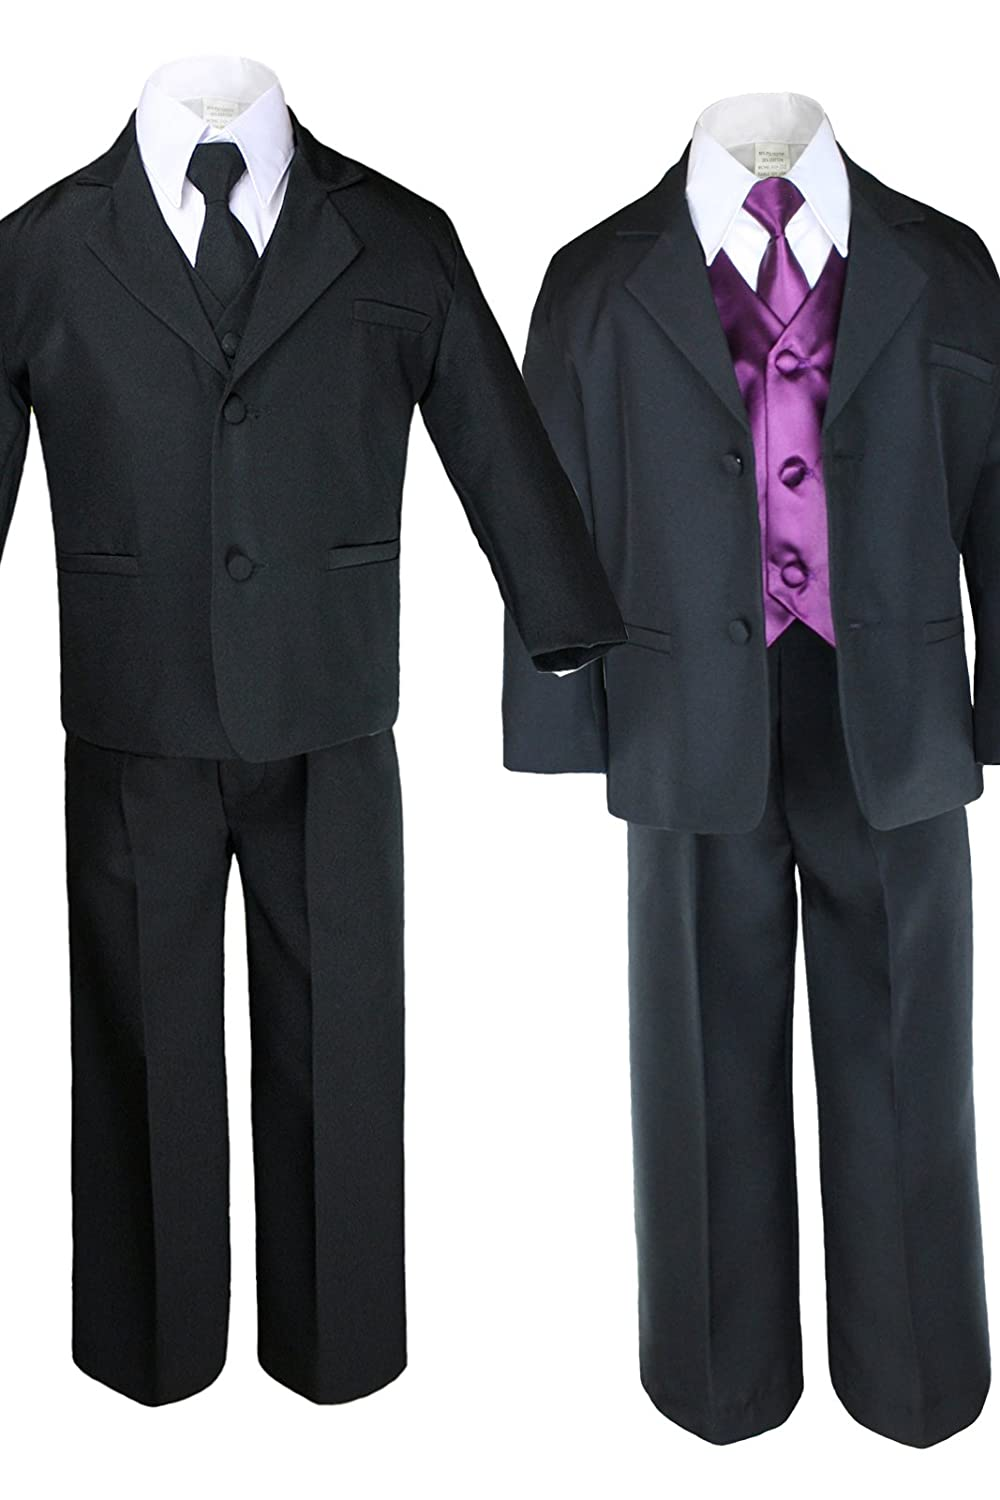 Unotux 7pc Boys Black Suit with Satin Eggplant Vest Set from Baby to Teen